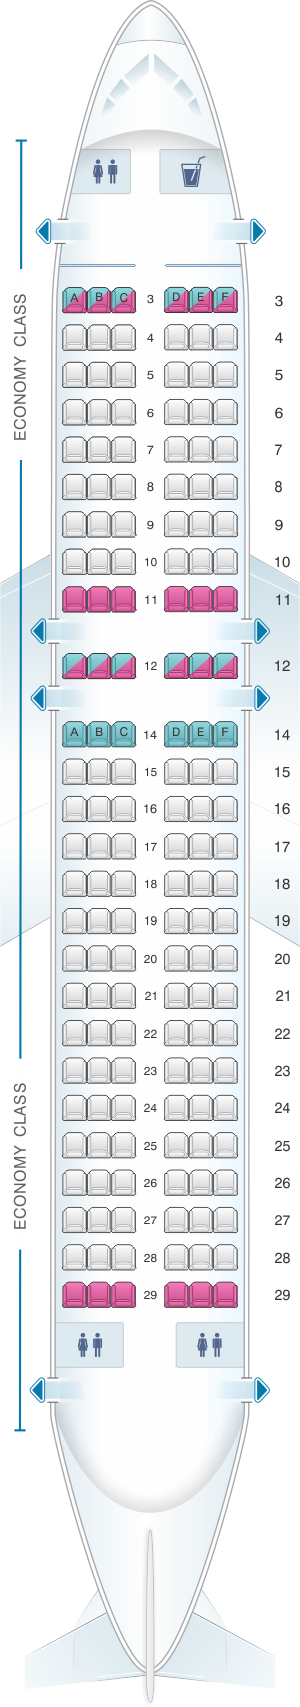 Seat map for Allegiant Air Airbus A319